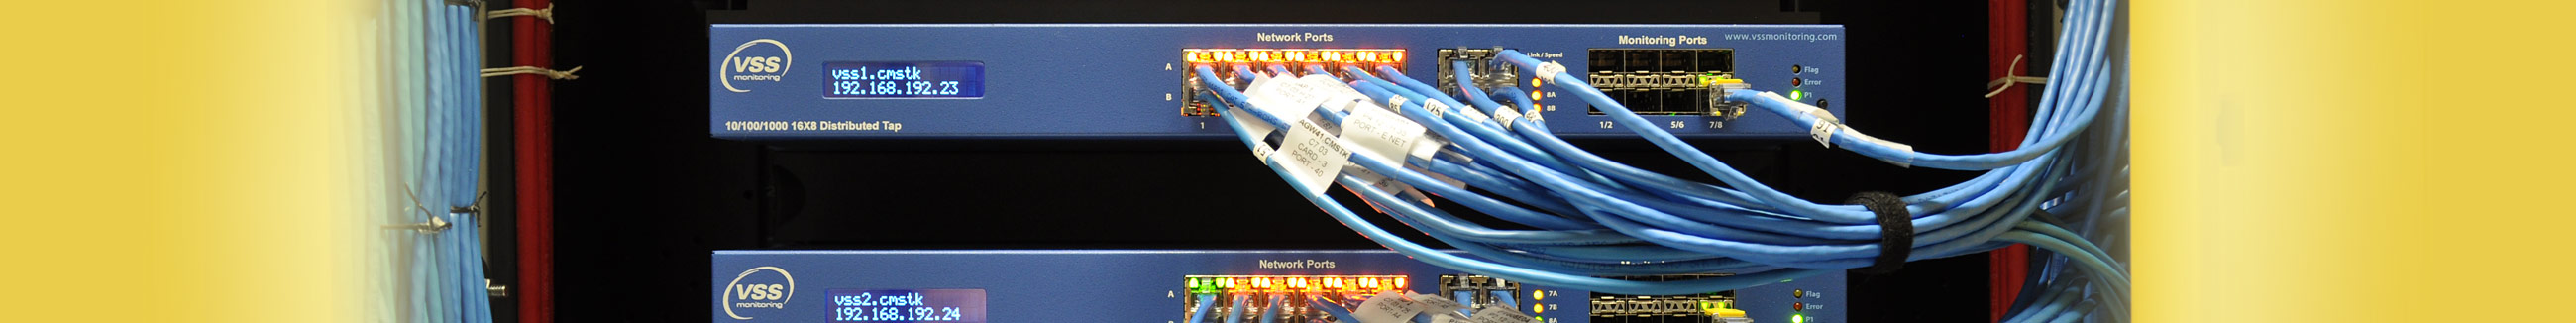 network ports, network monitoring